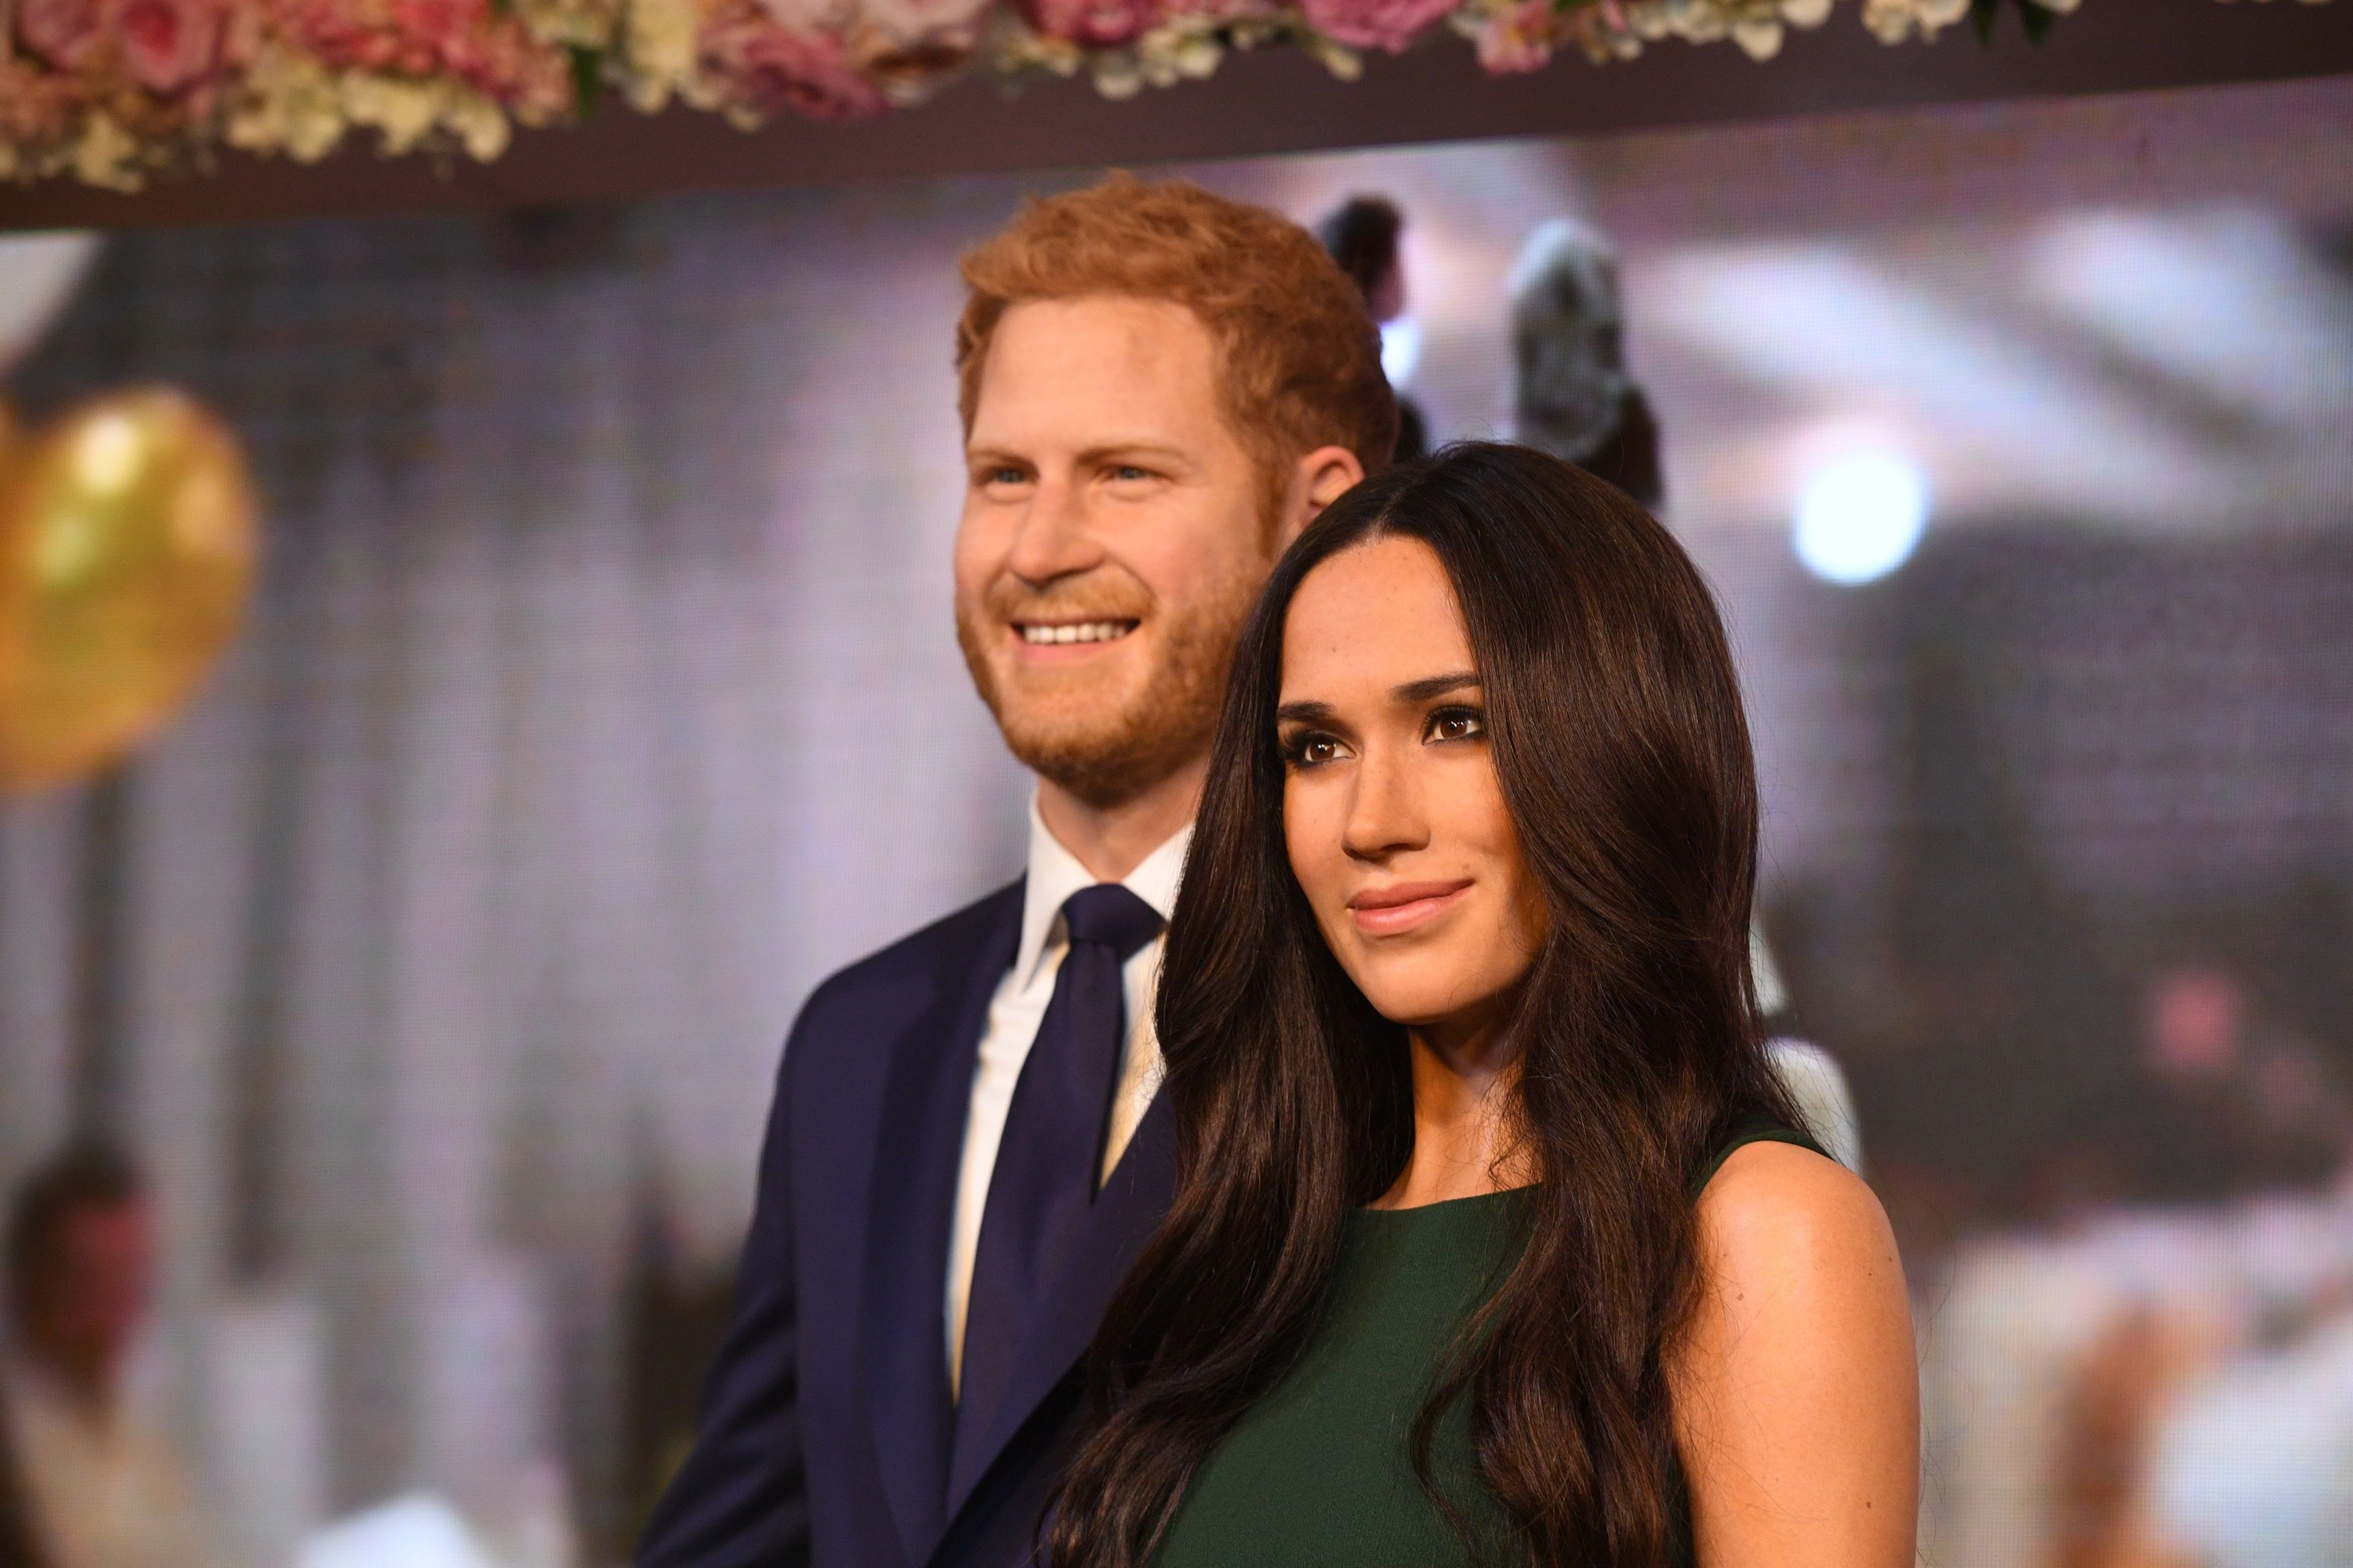 Meghan Markle's wax figure at Madame Tussauds has been unveiled